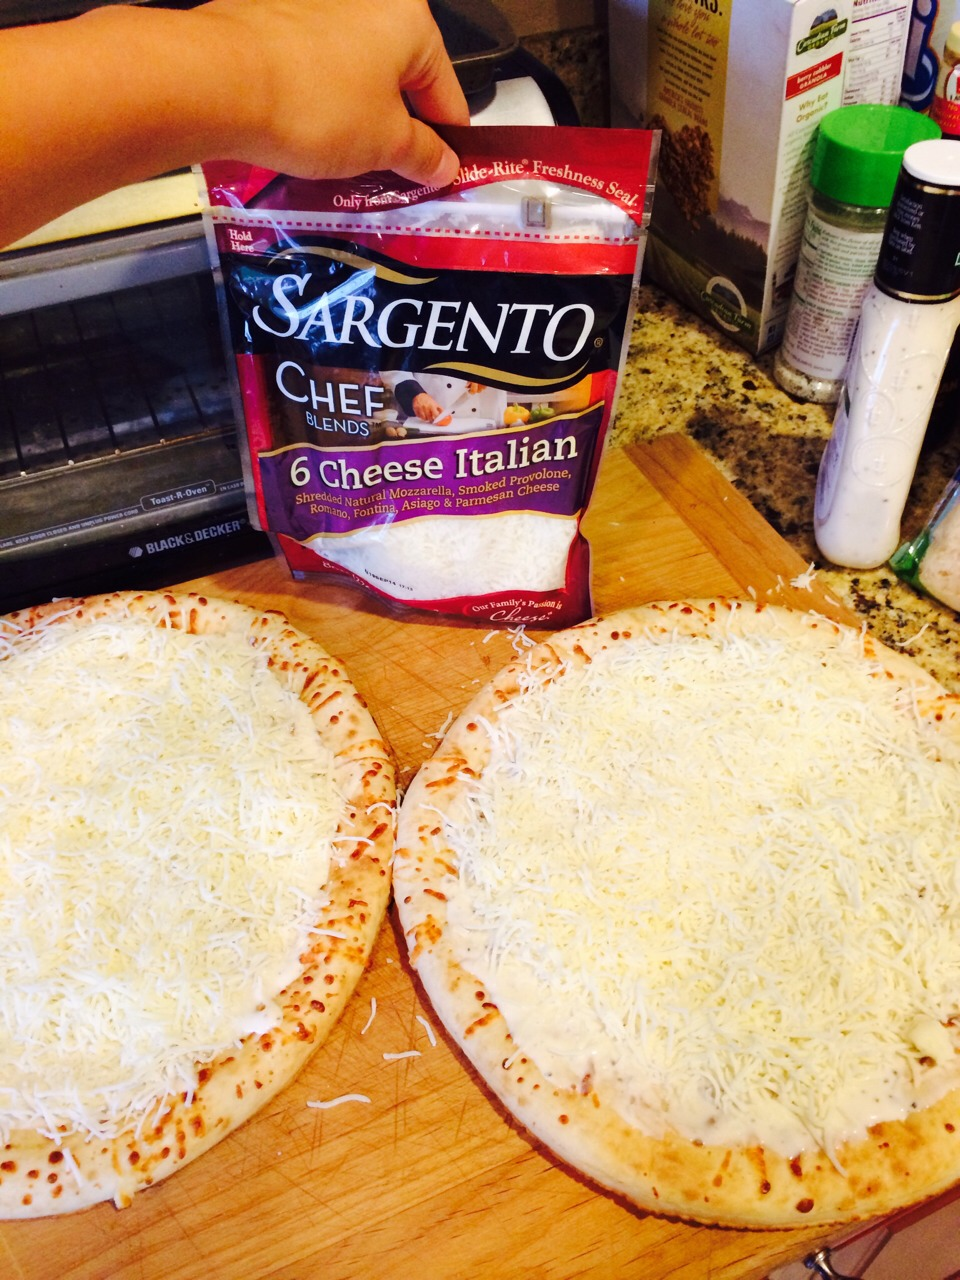 Now add 2-3 handfuls of sargento's 6 cheese Italian per 1 pizza crust.